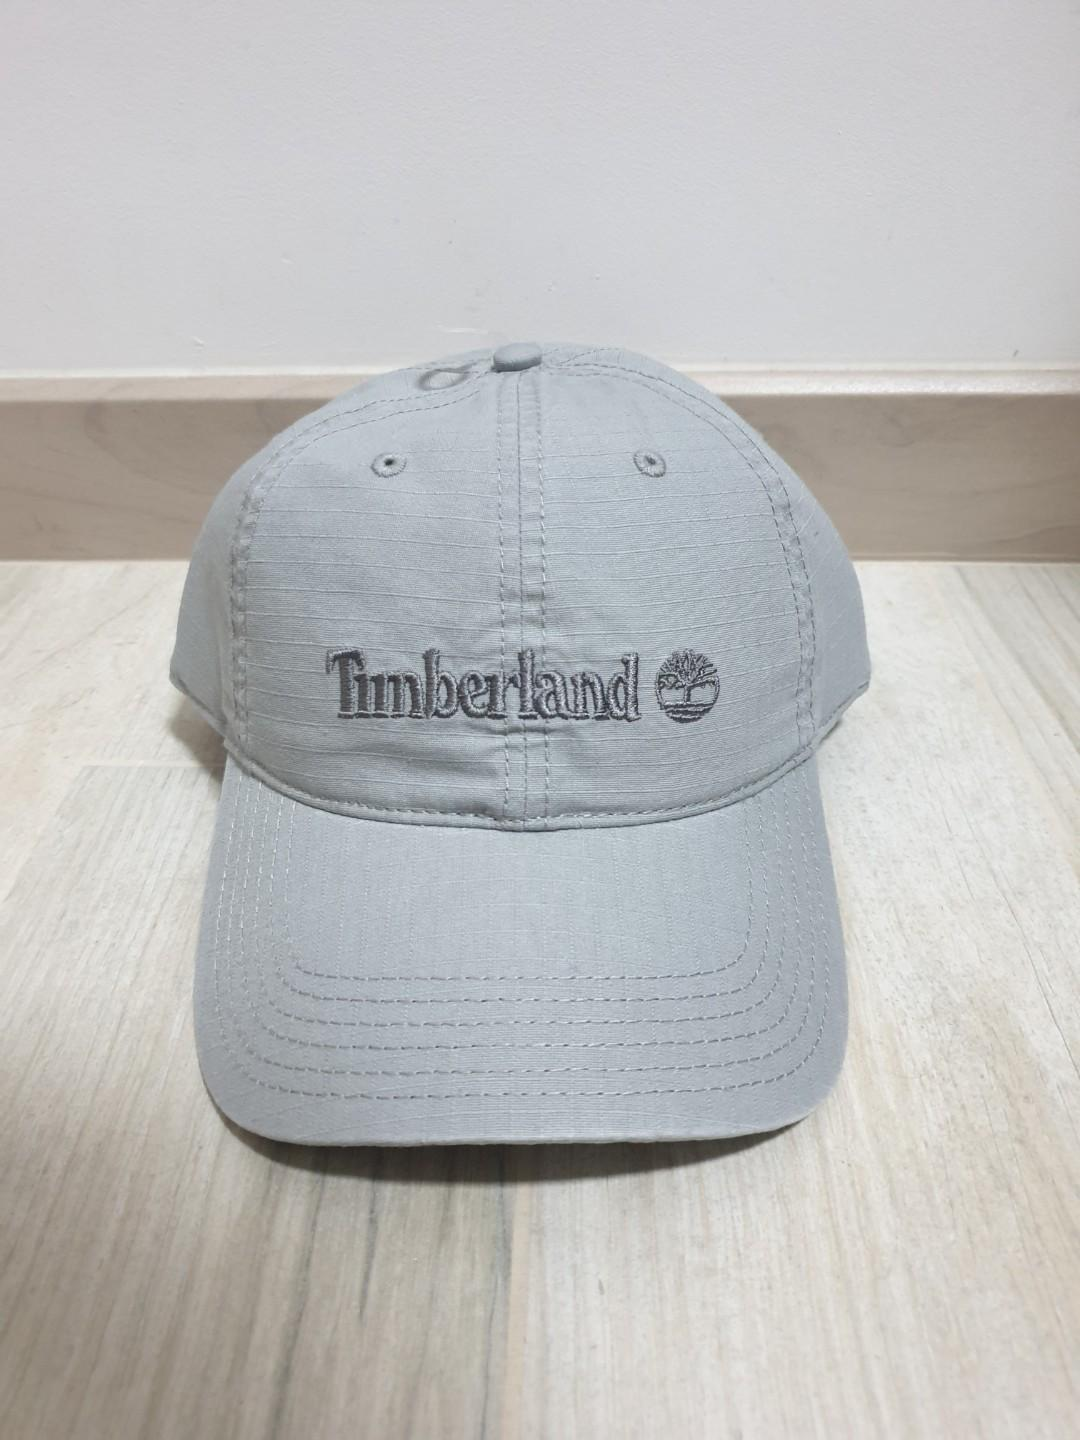 cad2706c3 Timberland Grey Cap, Men's Fashion, Accessories, Caps & Hats on ...